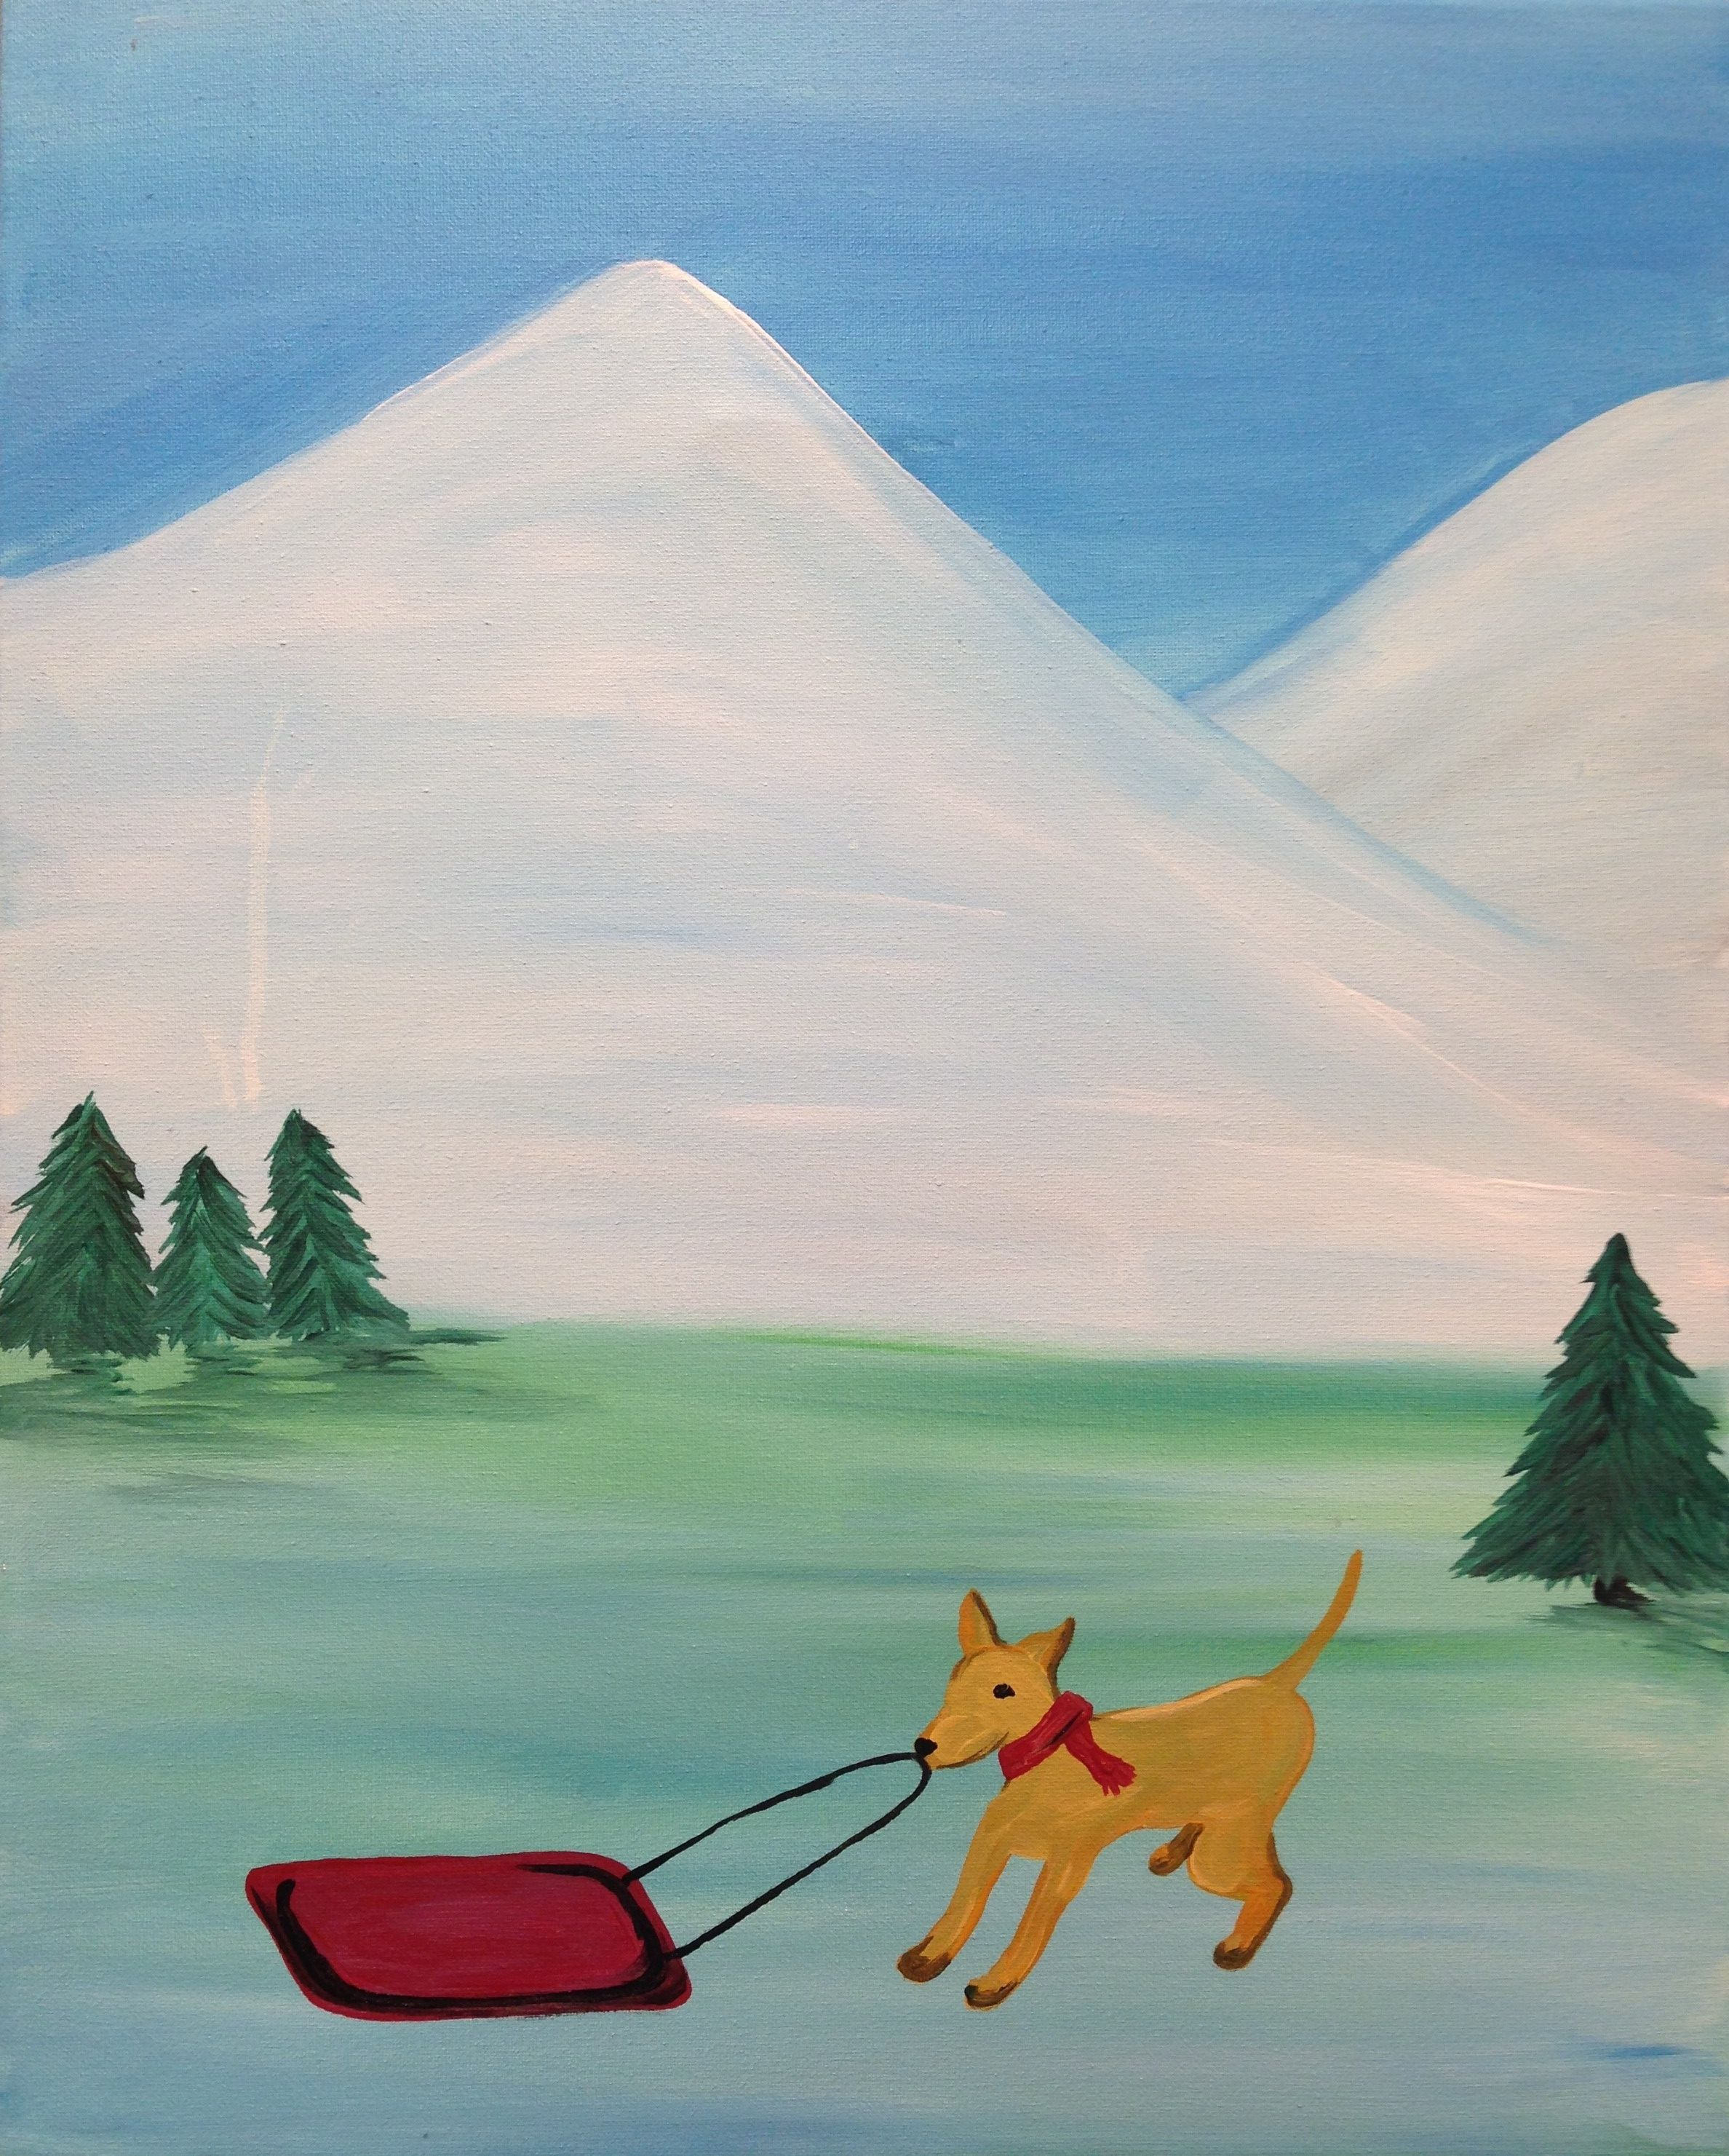 Check Out This Adorable Winter Themed Dog Painting We Will Be